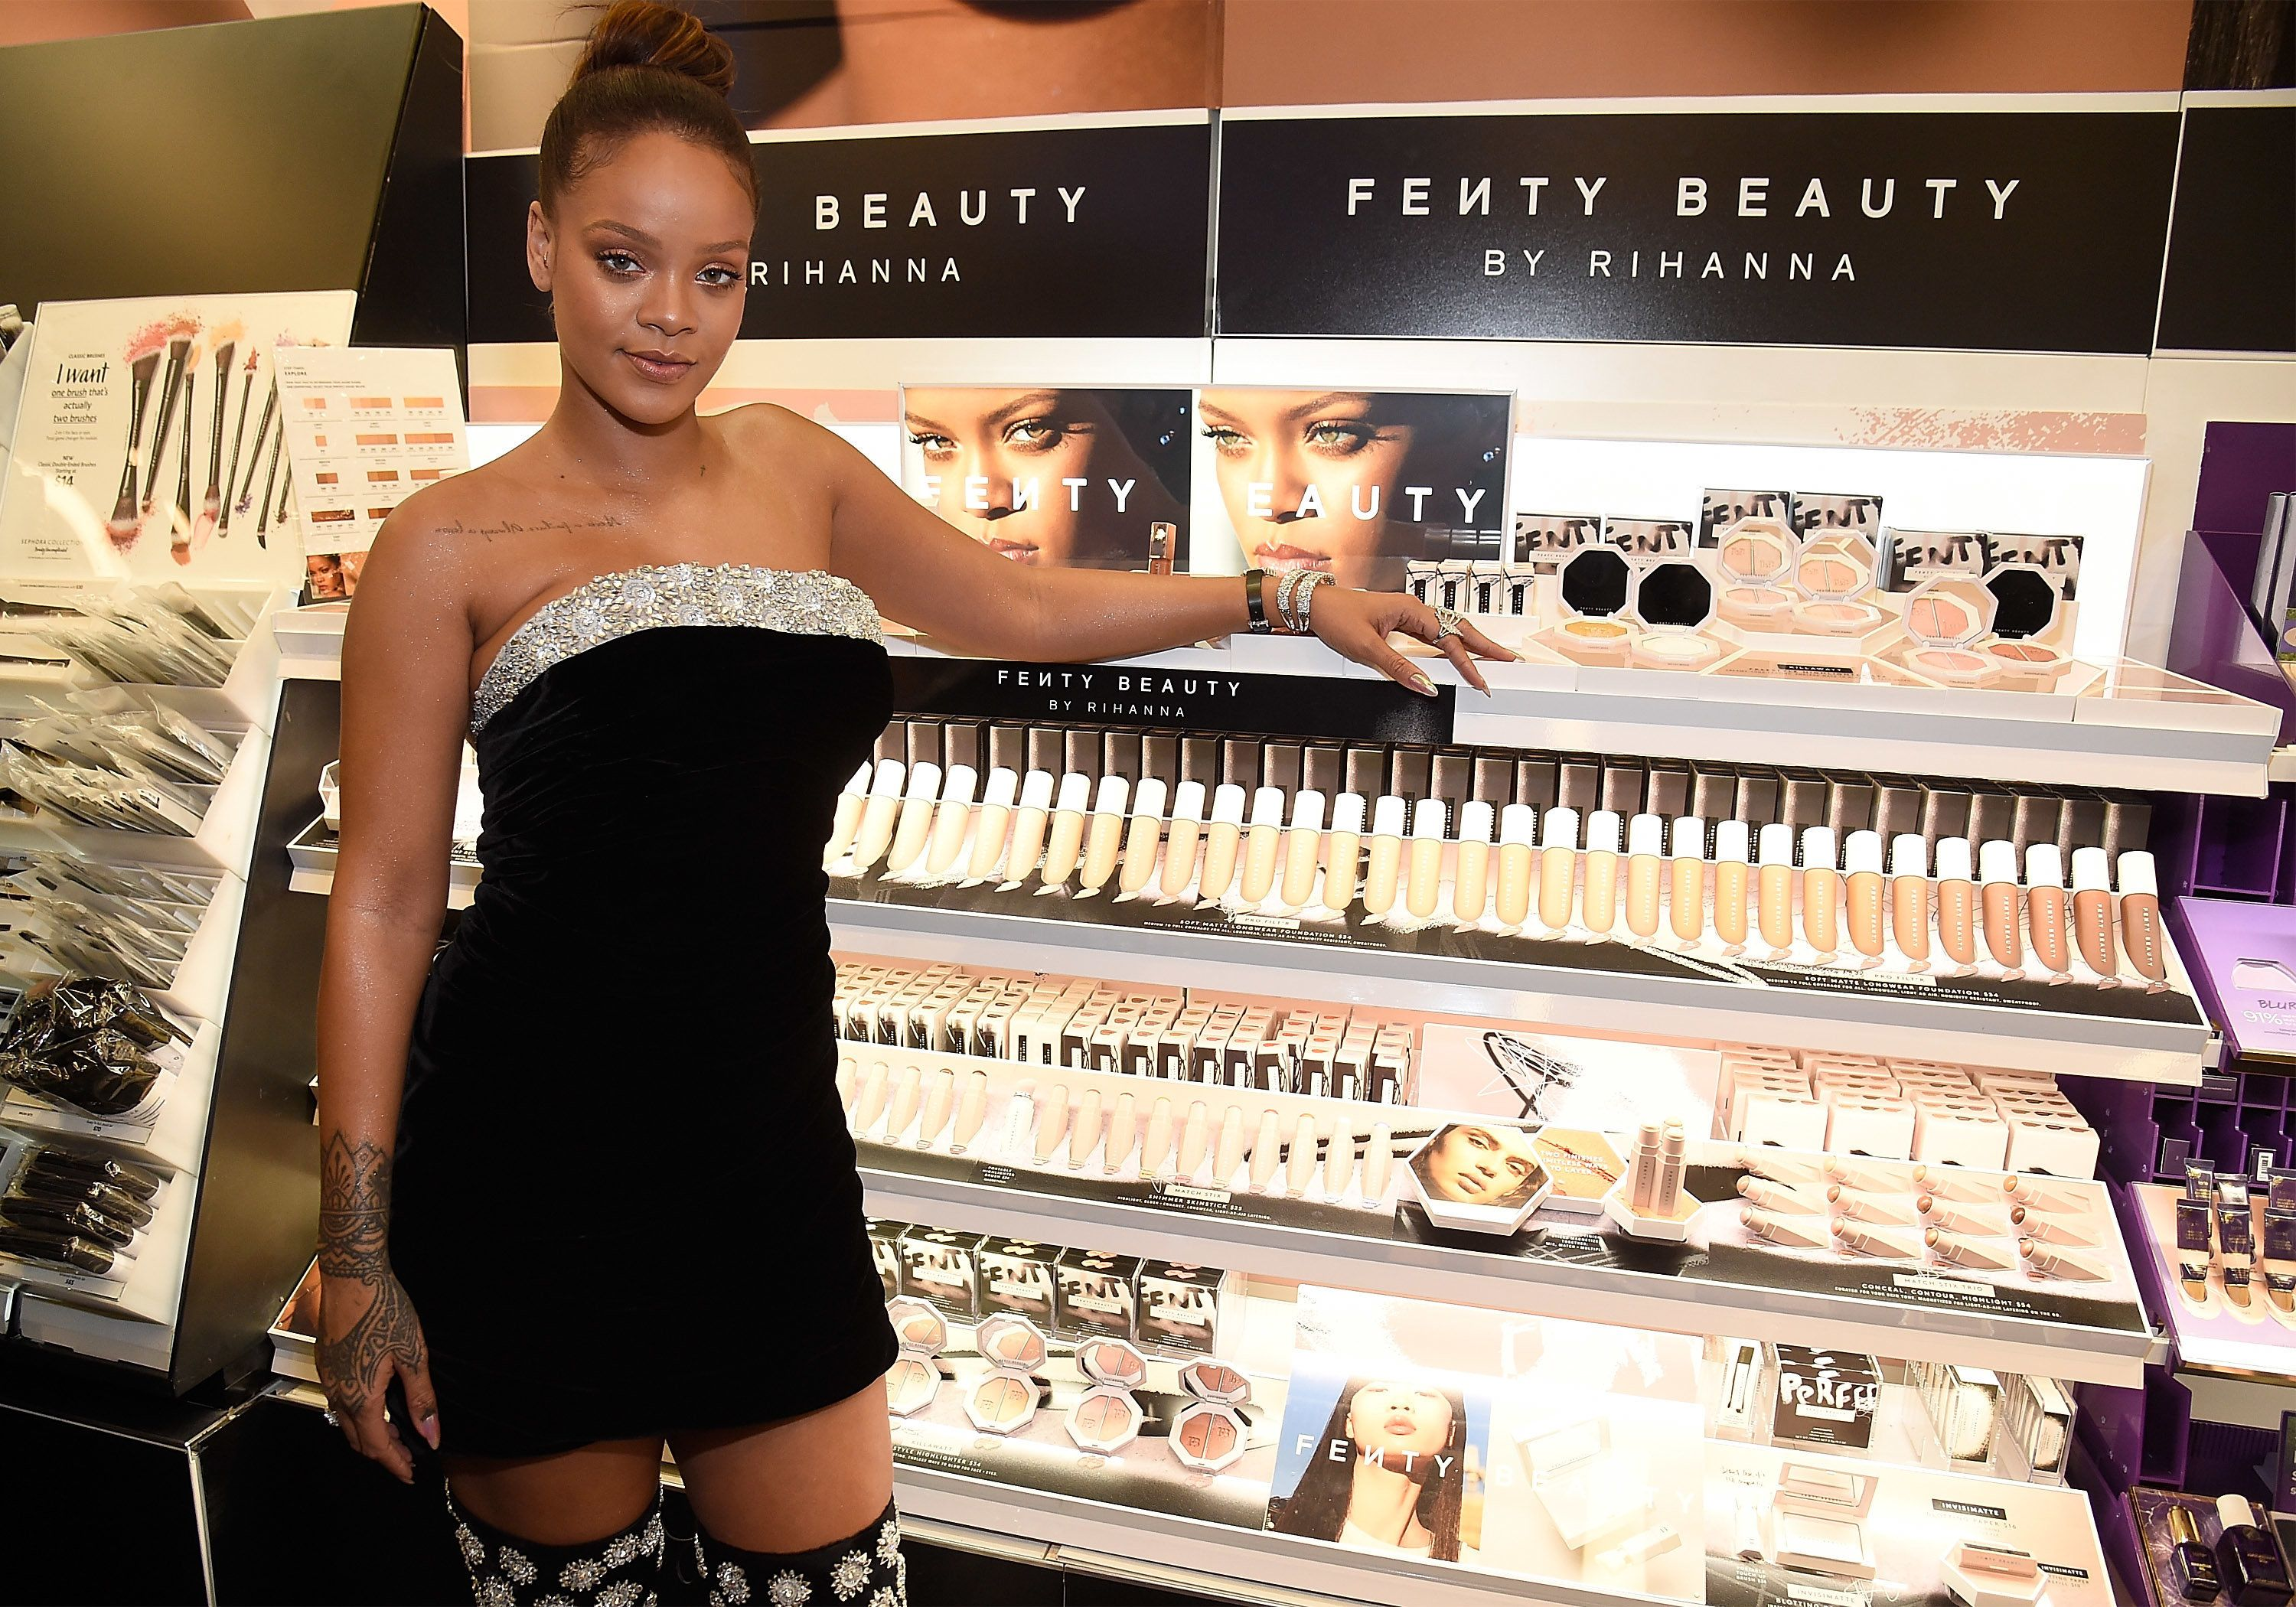 an introduction to rihannas impact on music culture What sort of music do  had to make a commitmentâ and they're willing to make commitments and try to keep itâ they want to have an impactâ they.